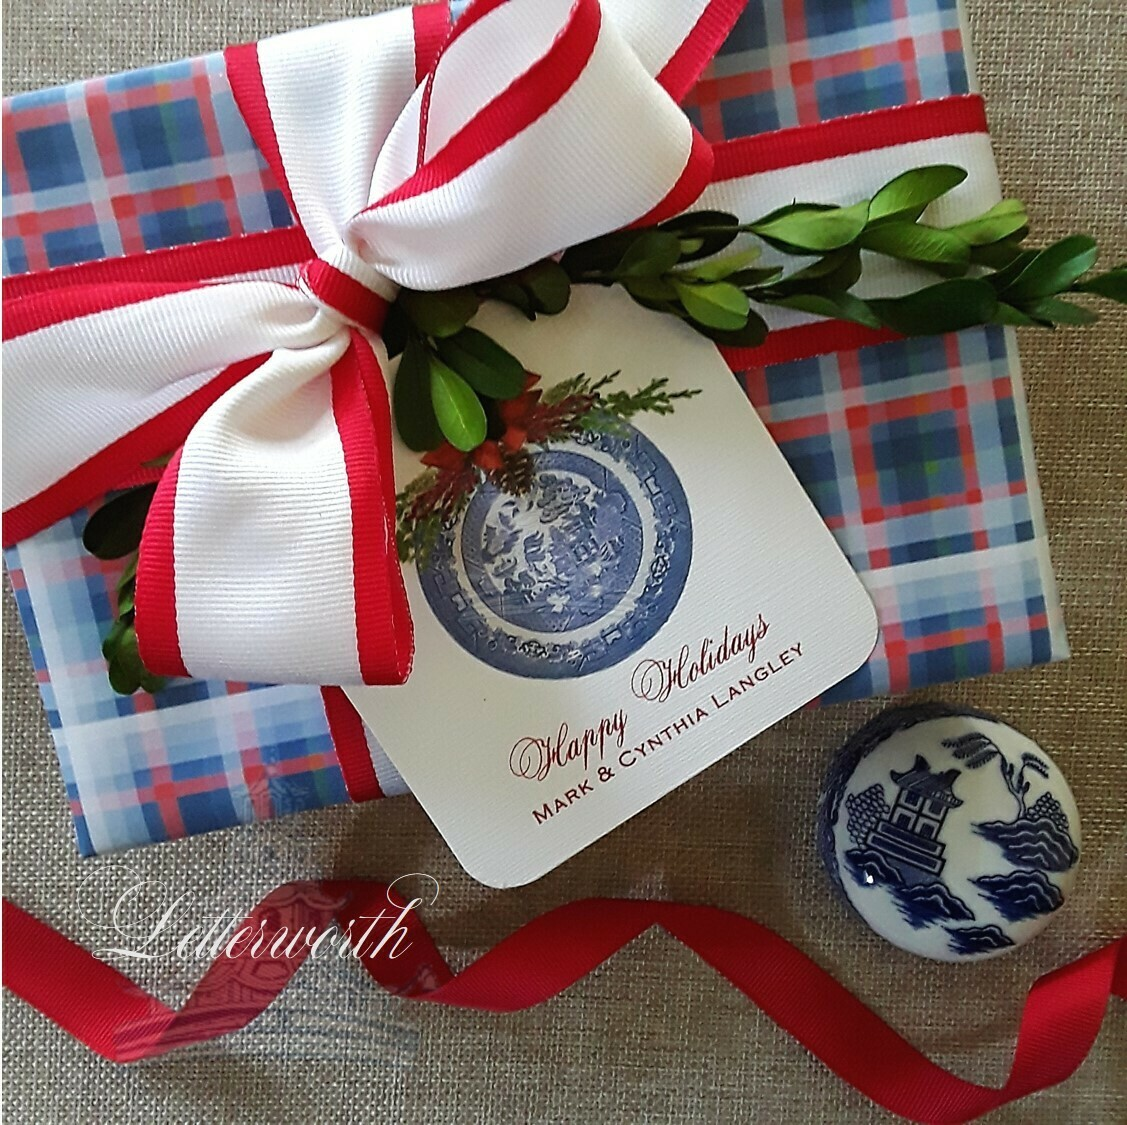 Blue and Red Plaid Gift Wrapping Paper by Letterworth